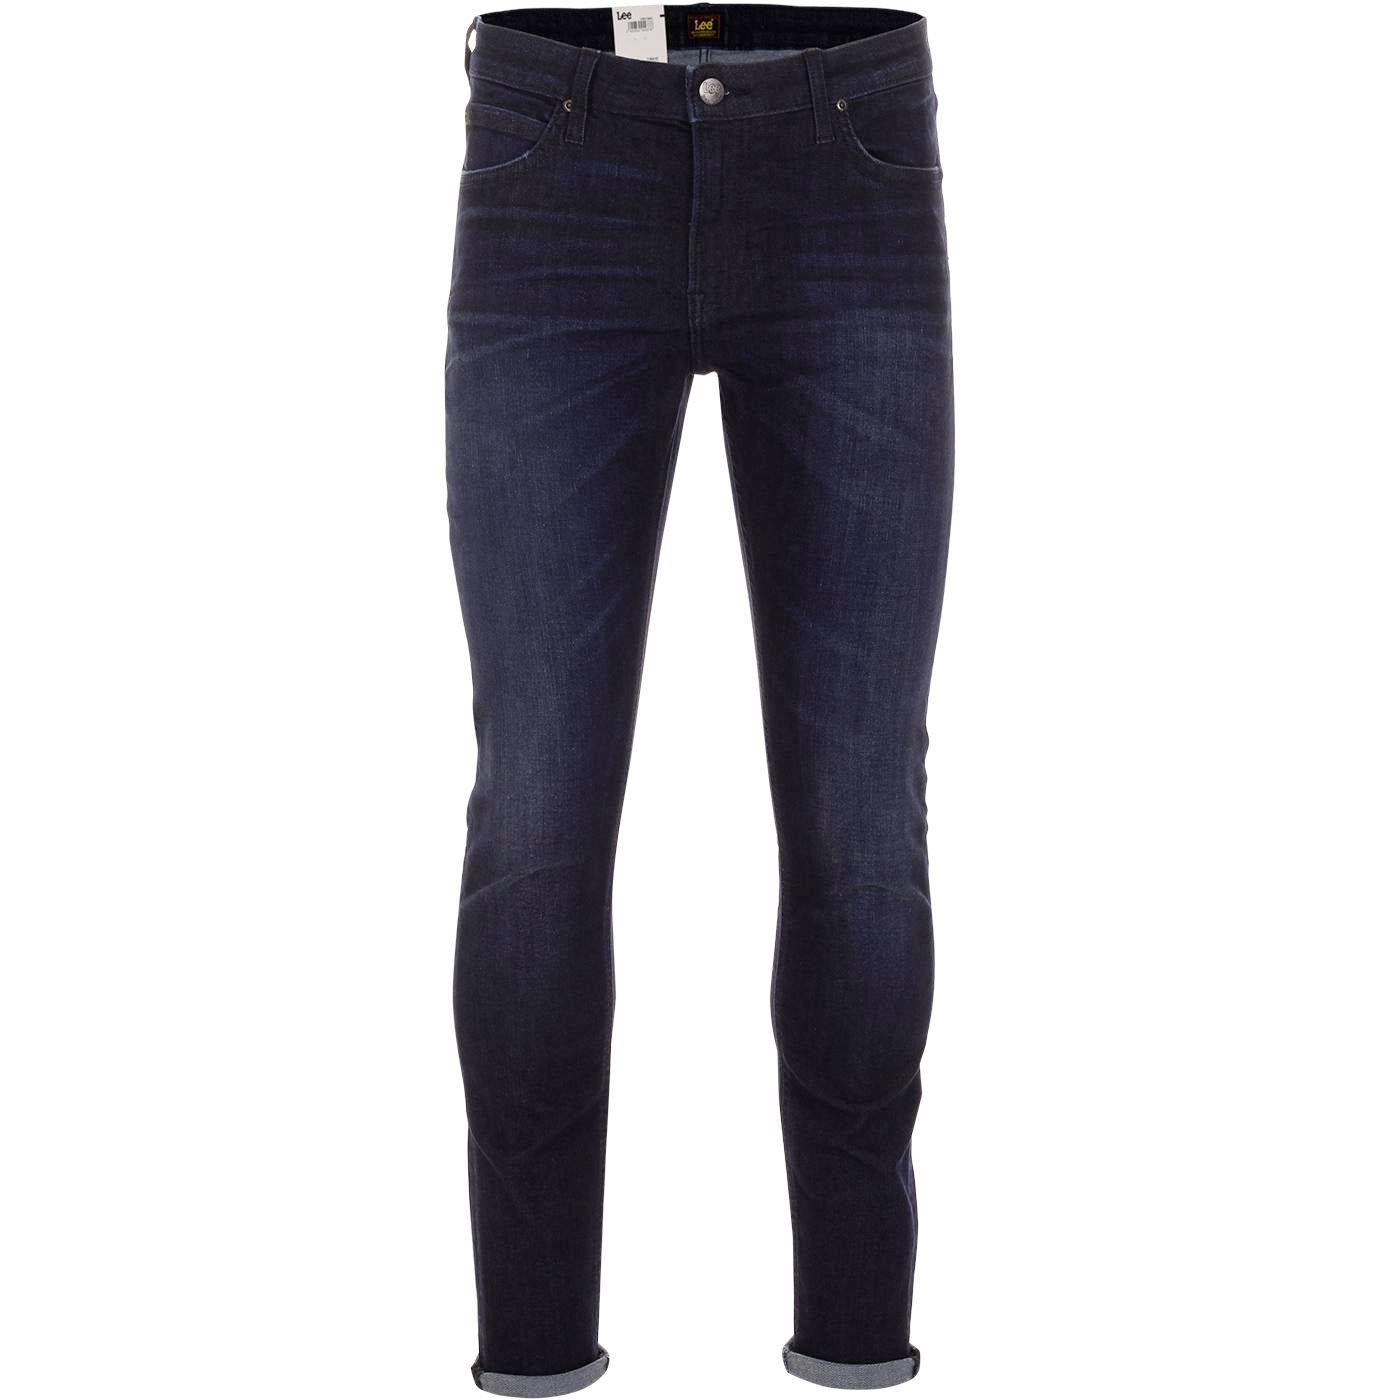 Malone LEE JEANS Retro Skinny Jeans (Pine Blue)